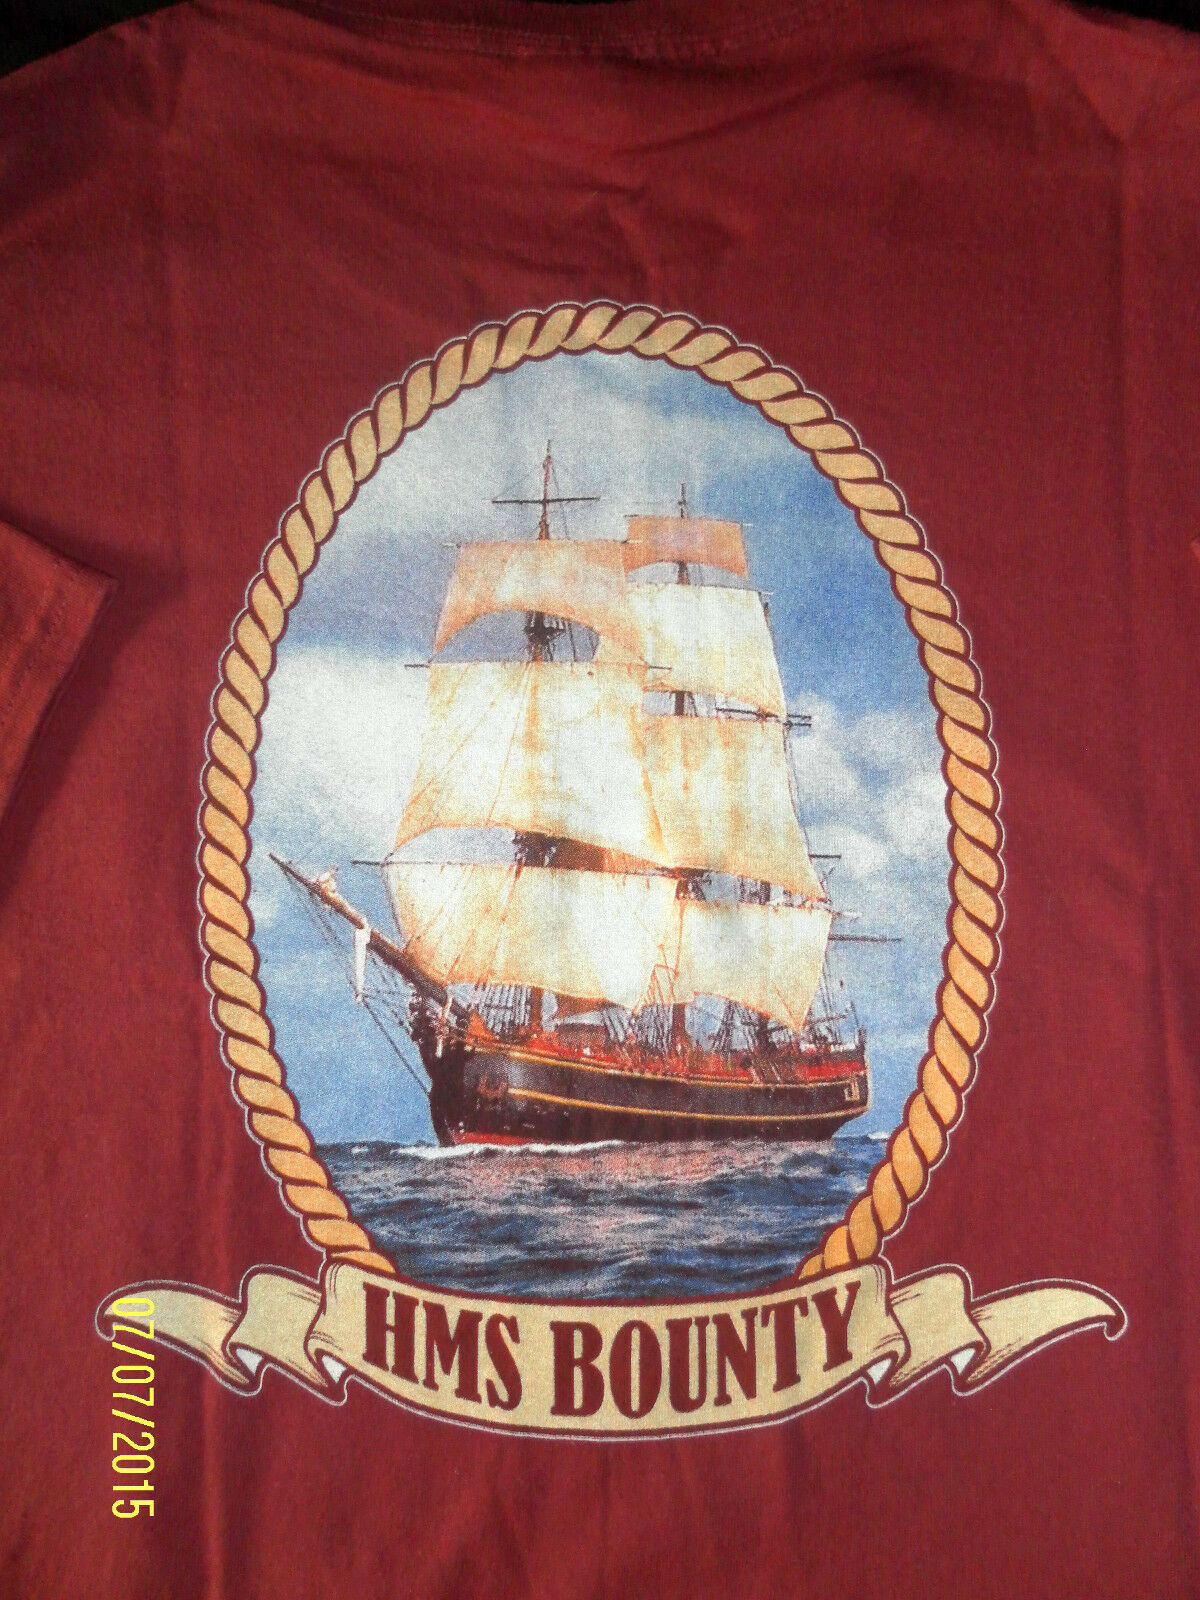 HMS Bounty T-Shirt 50 Years of History Original von der Bounty-Gr:XL-Rot-NEU